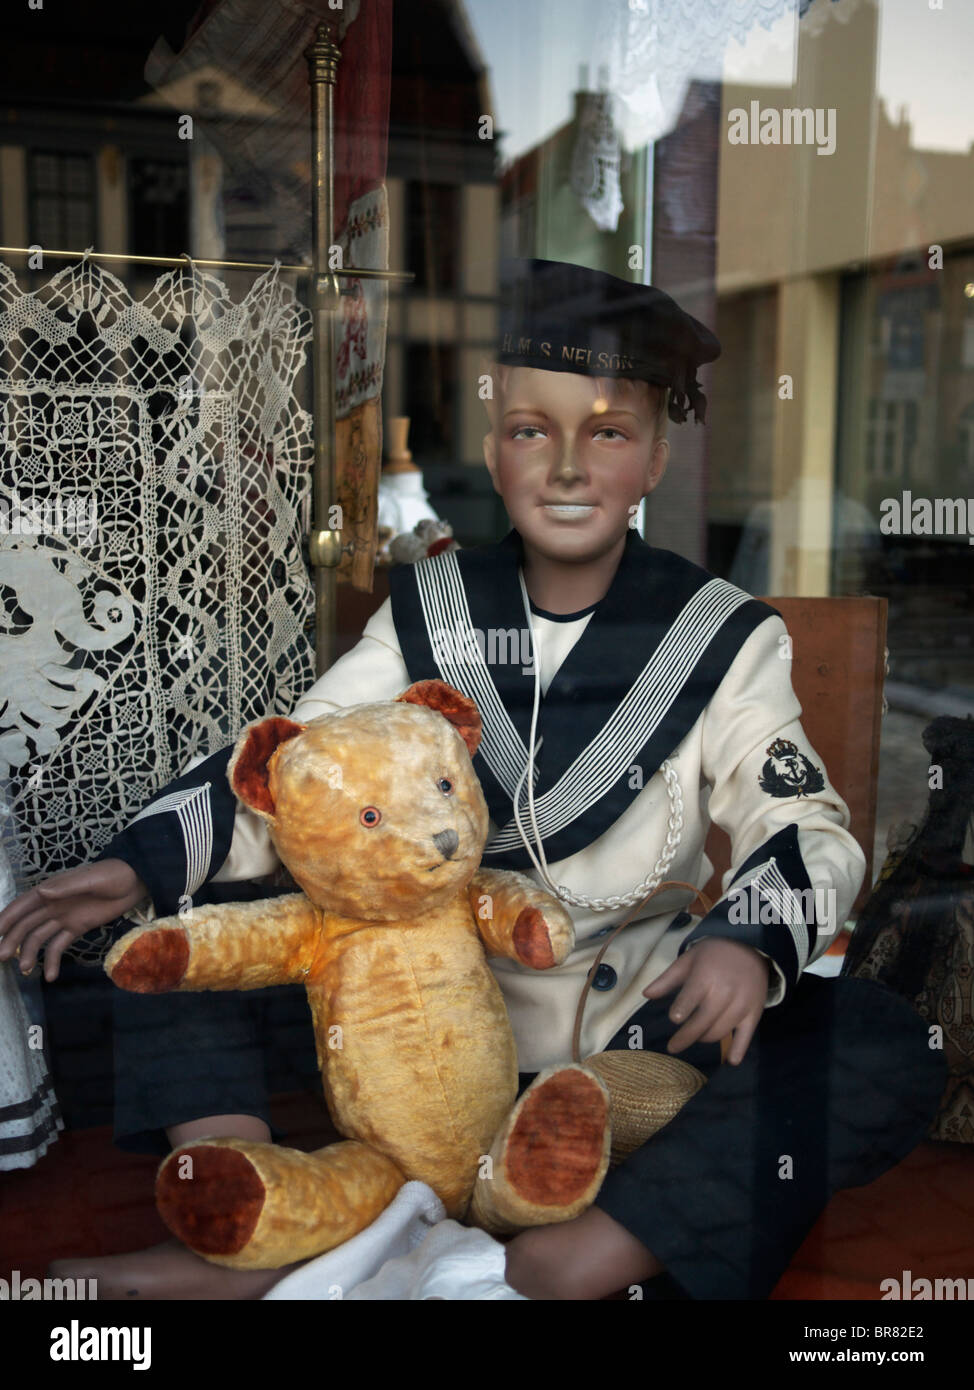 Sailor doll and teddy bear in a shopwindow in Antwerp, Belgium - Stock Image